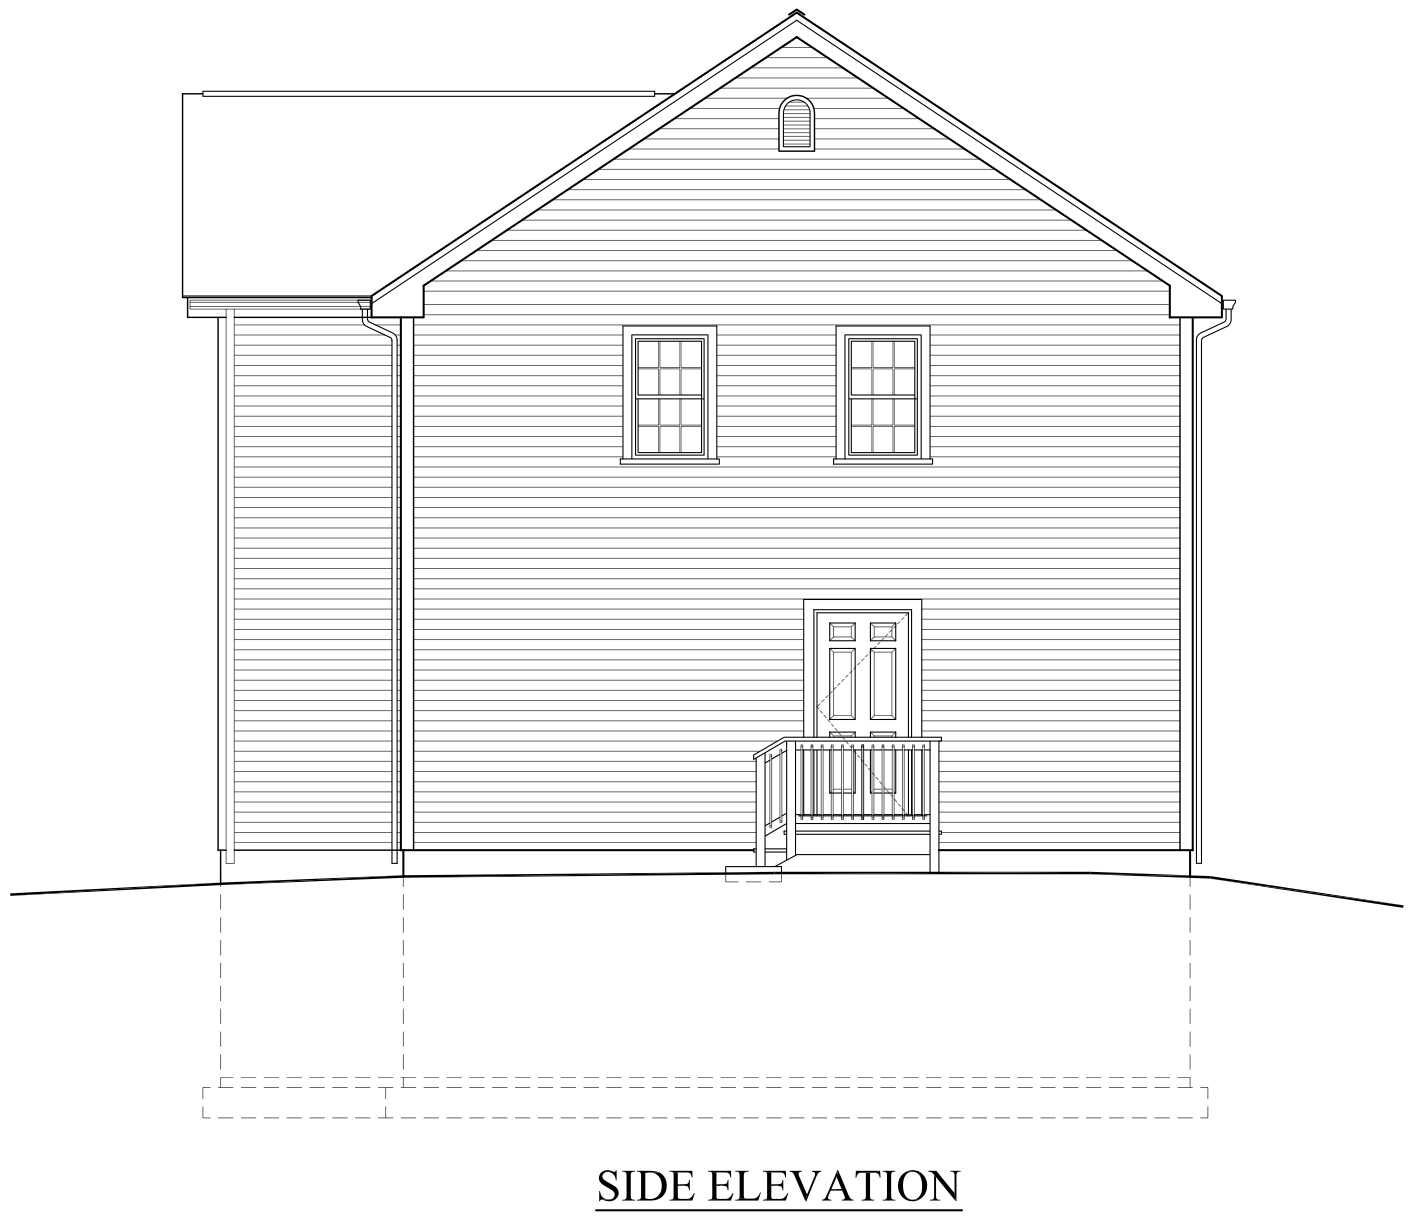 Elevation Plan And Side Views : What is front elevation